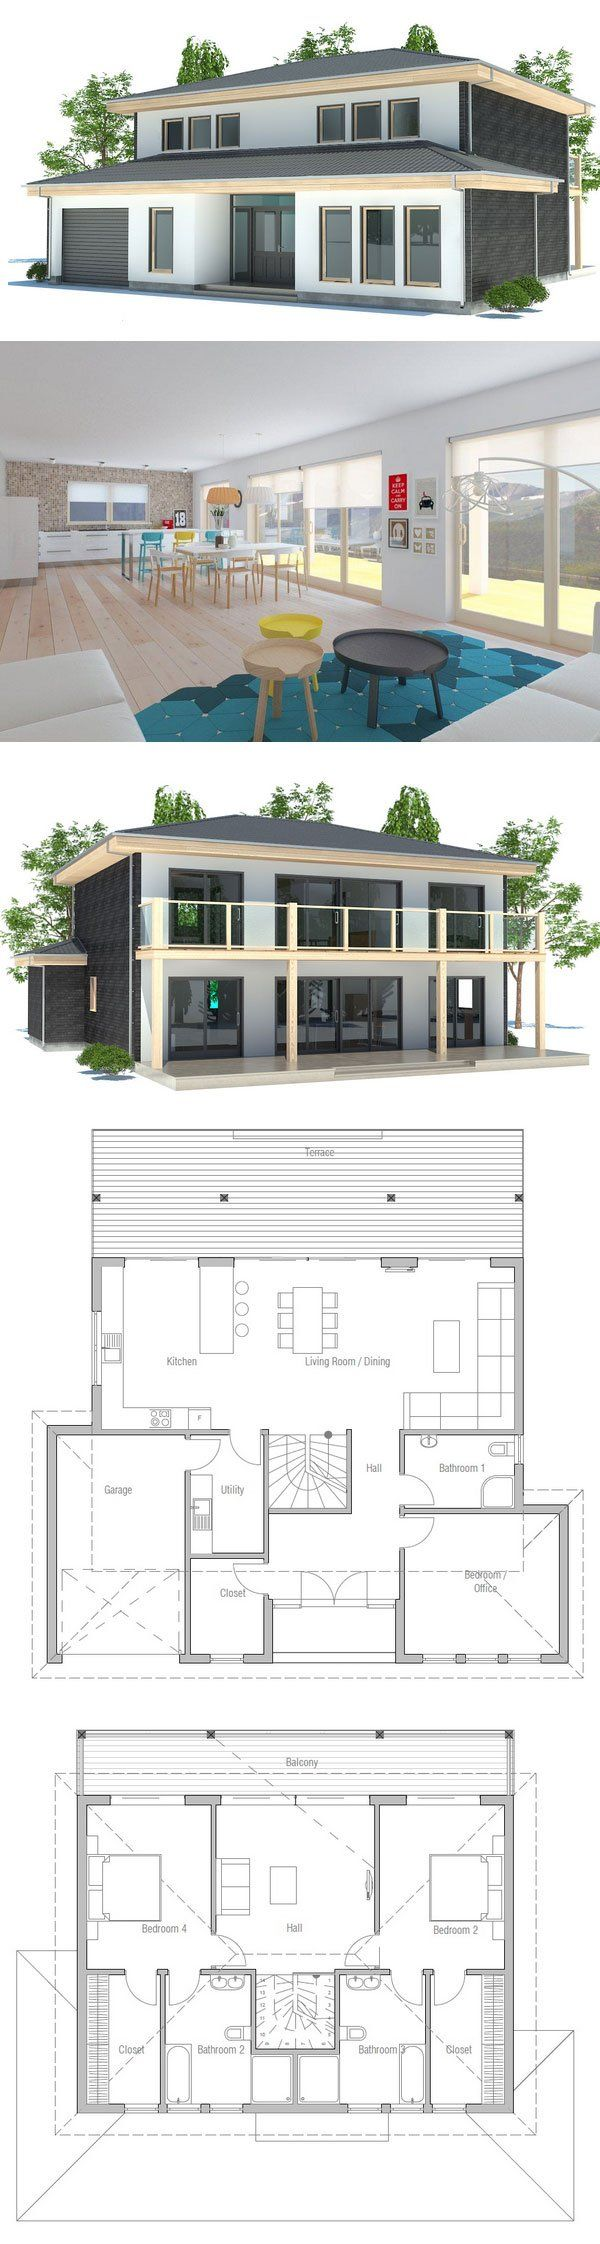 ^ 1000+ images about Modern house plans on Pinterest Small modern ...